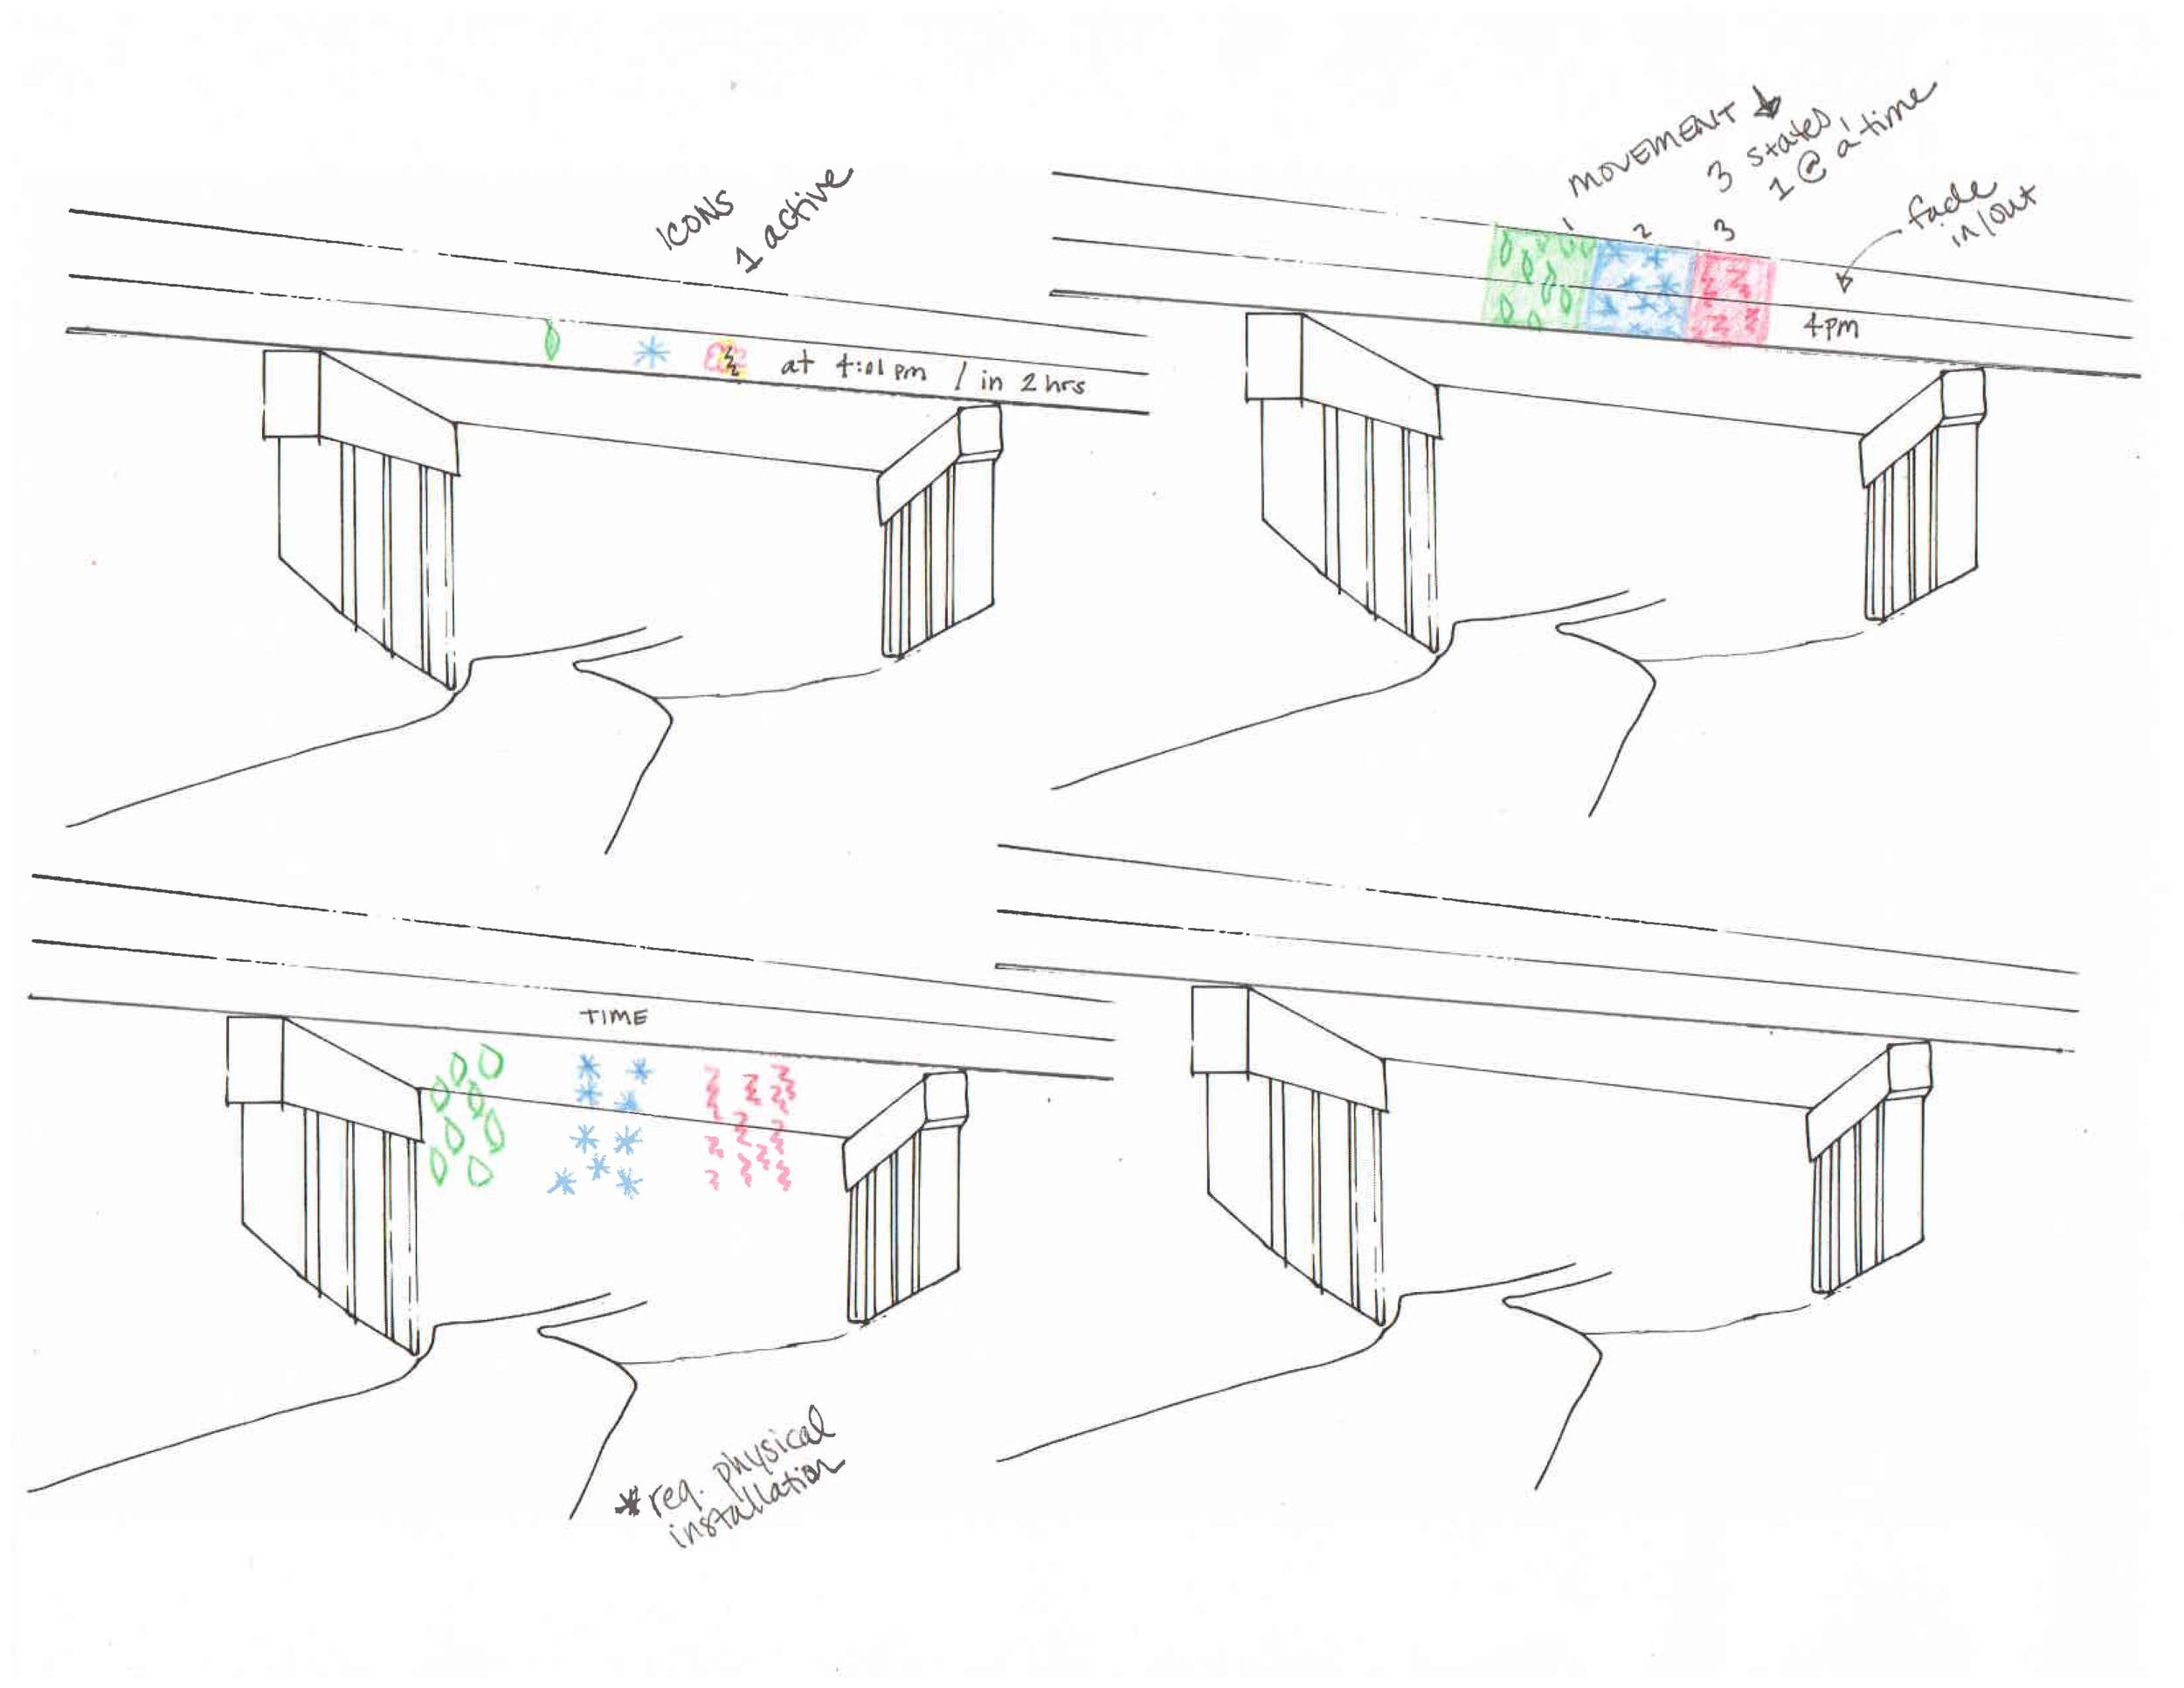 brainstorm-sketches-bridge-2.png